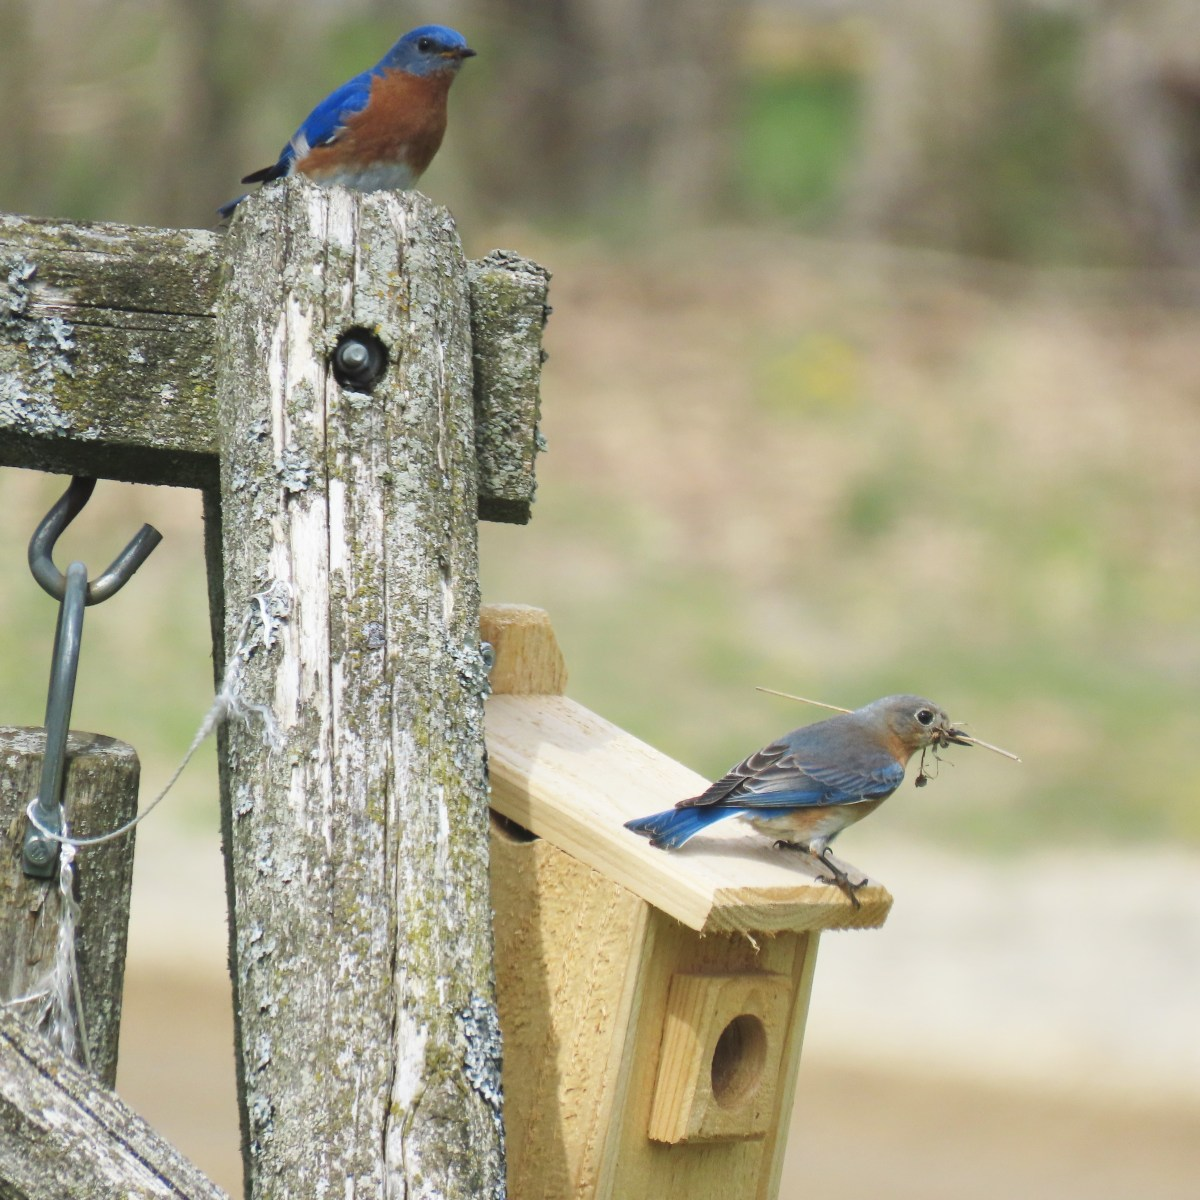 Two Eastern Bluebirds, a male is perched on a fence post and the female is perched on a bluebird box just below